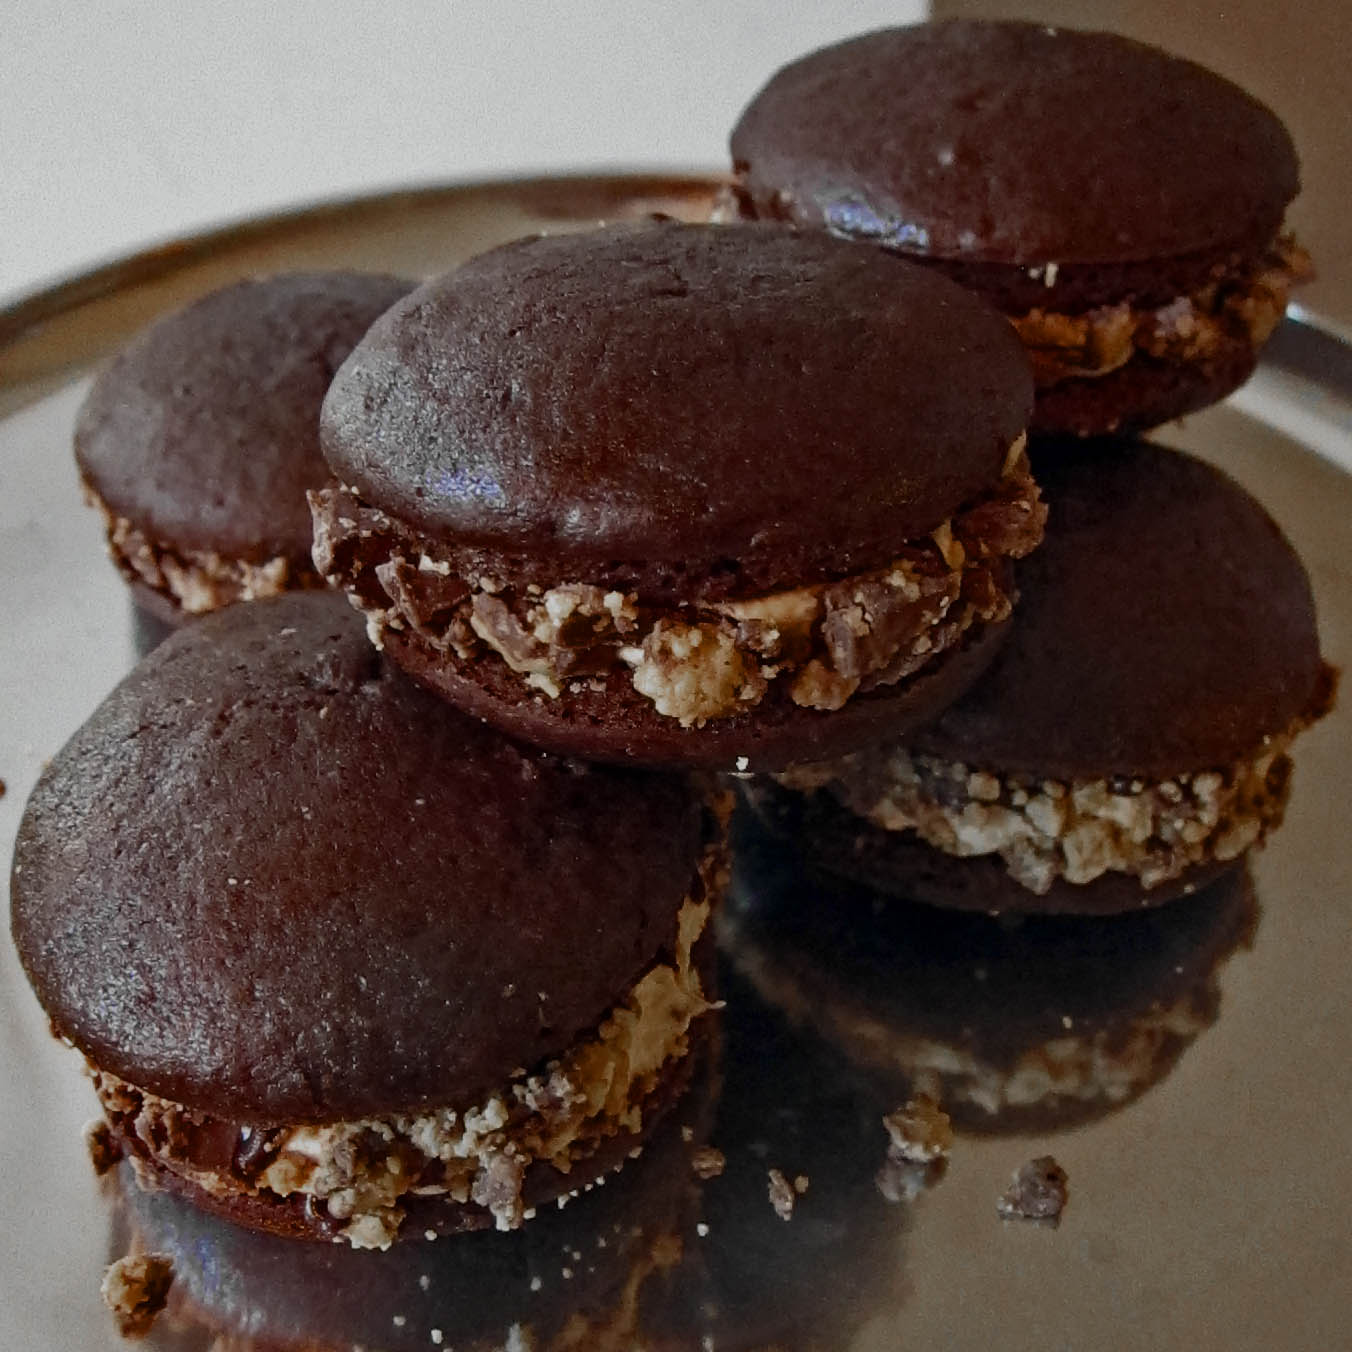 ... : Peanut Butter Cup Whoopie Pies with Chocolate & Peanut Butter Glaze